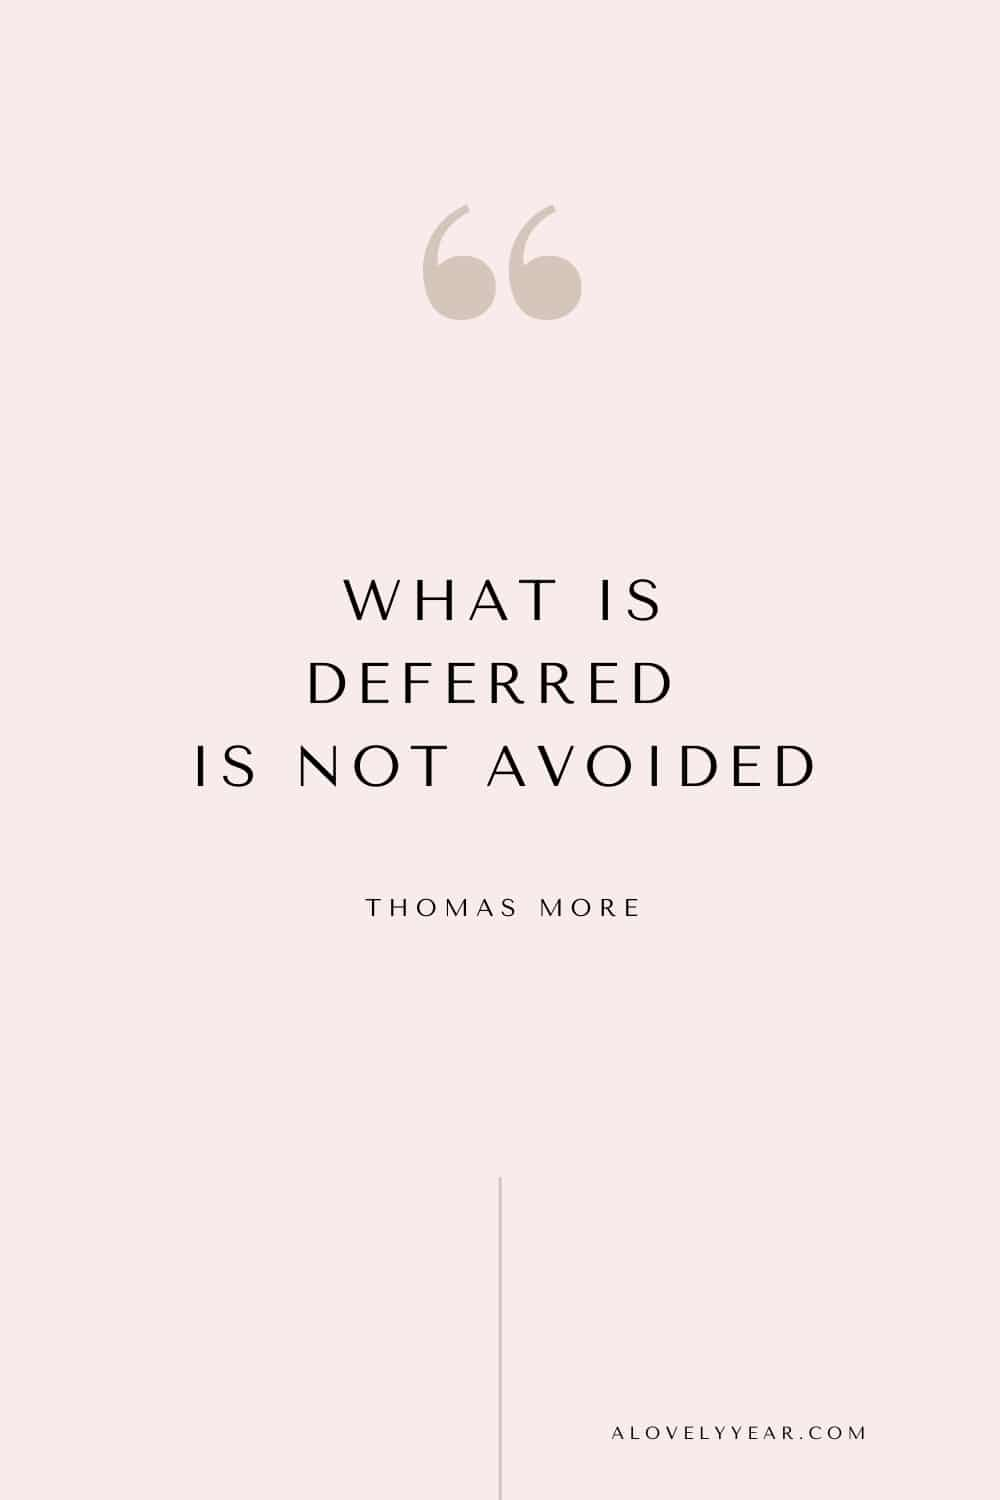 Get things done quote - What is deferred is not avoided. ― Thomas More